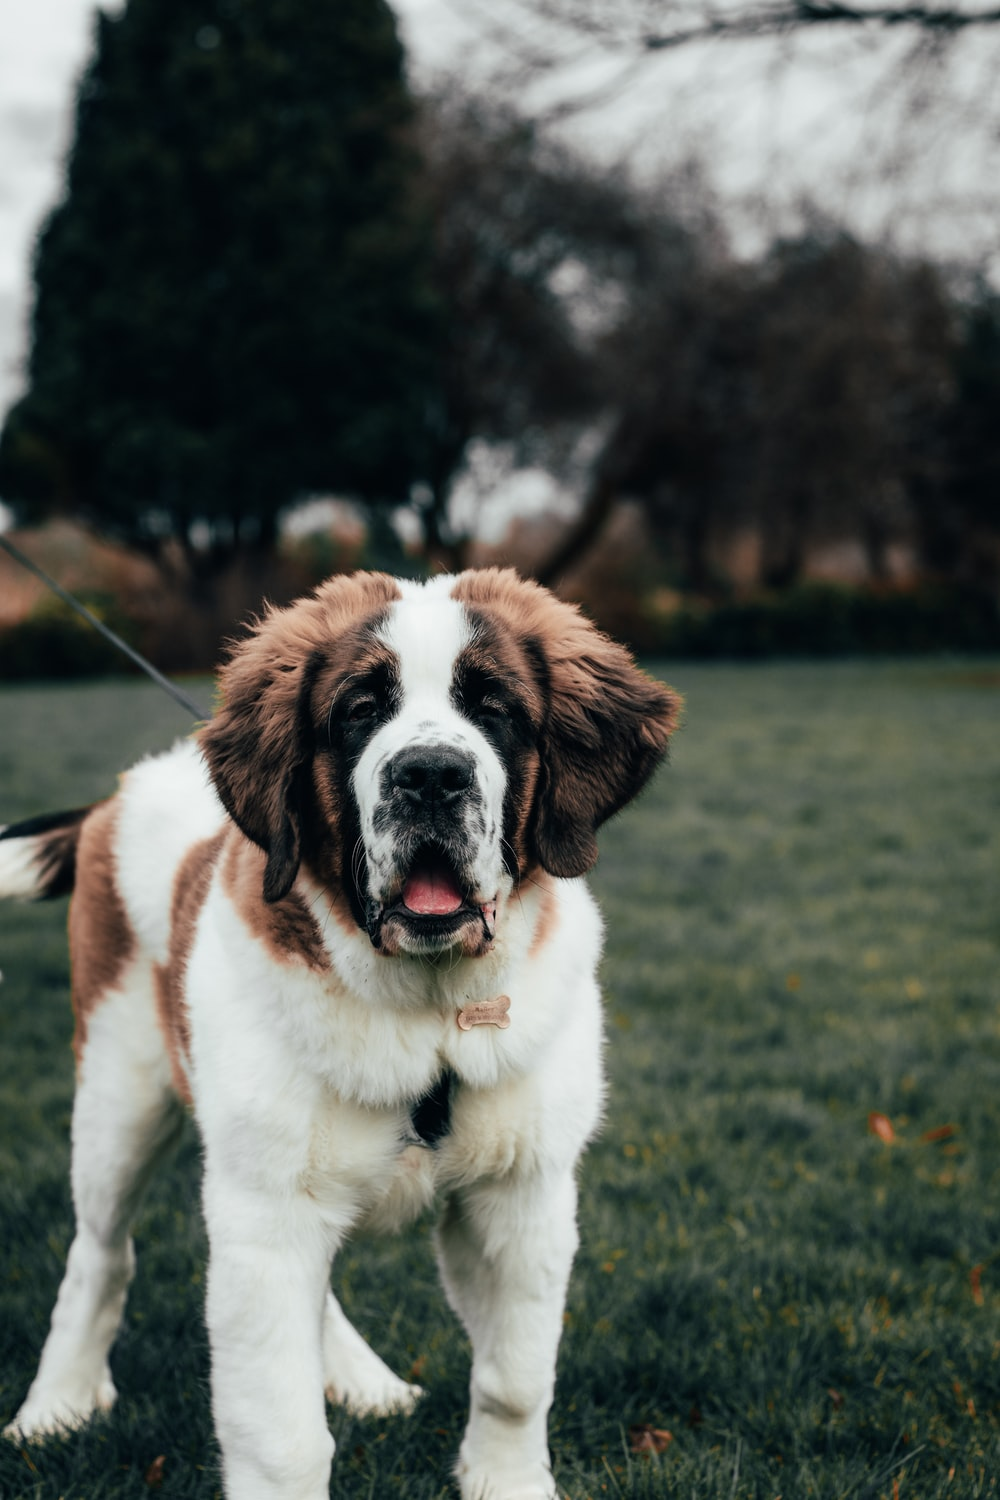 white and brown saint bernard dog on green grass field during daytime